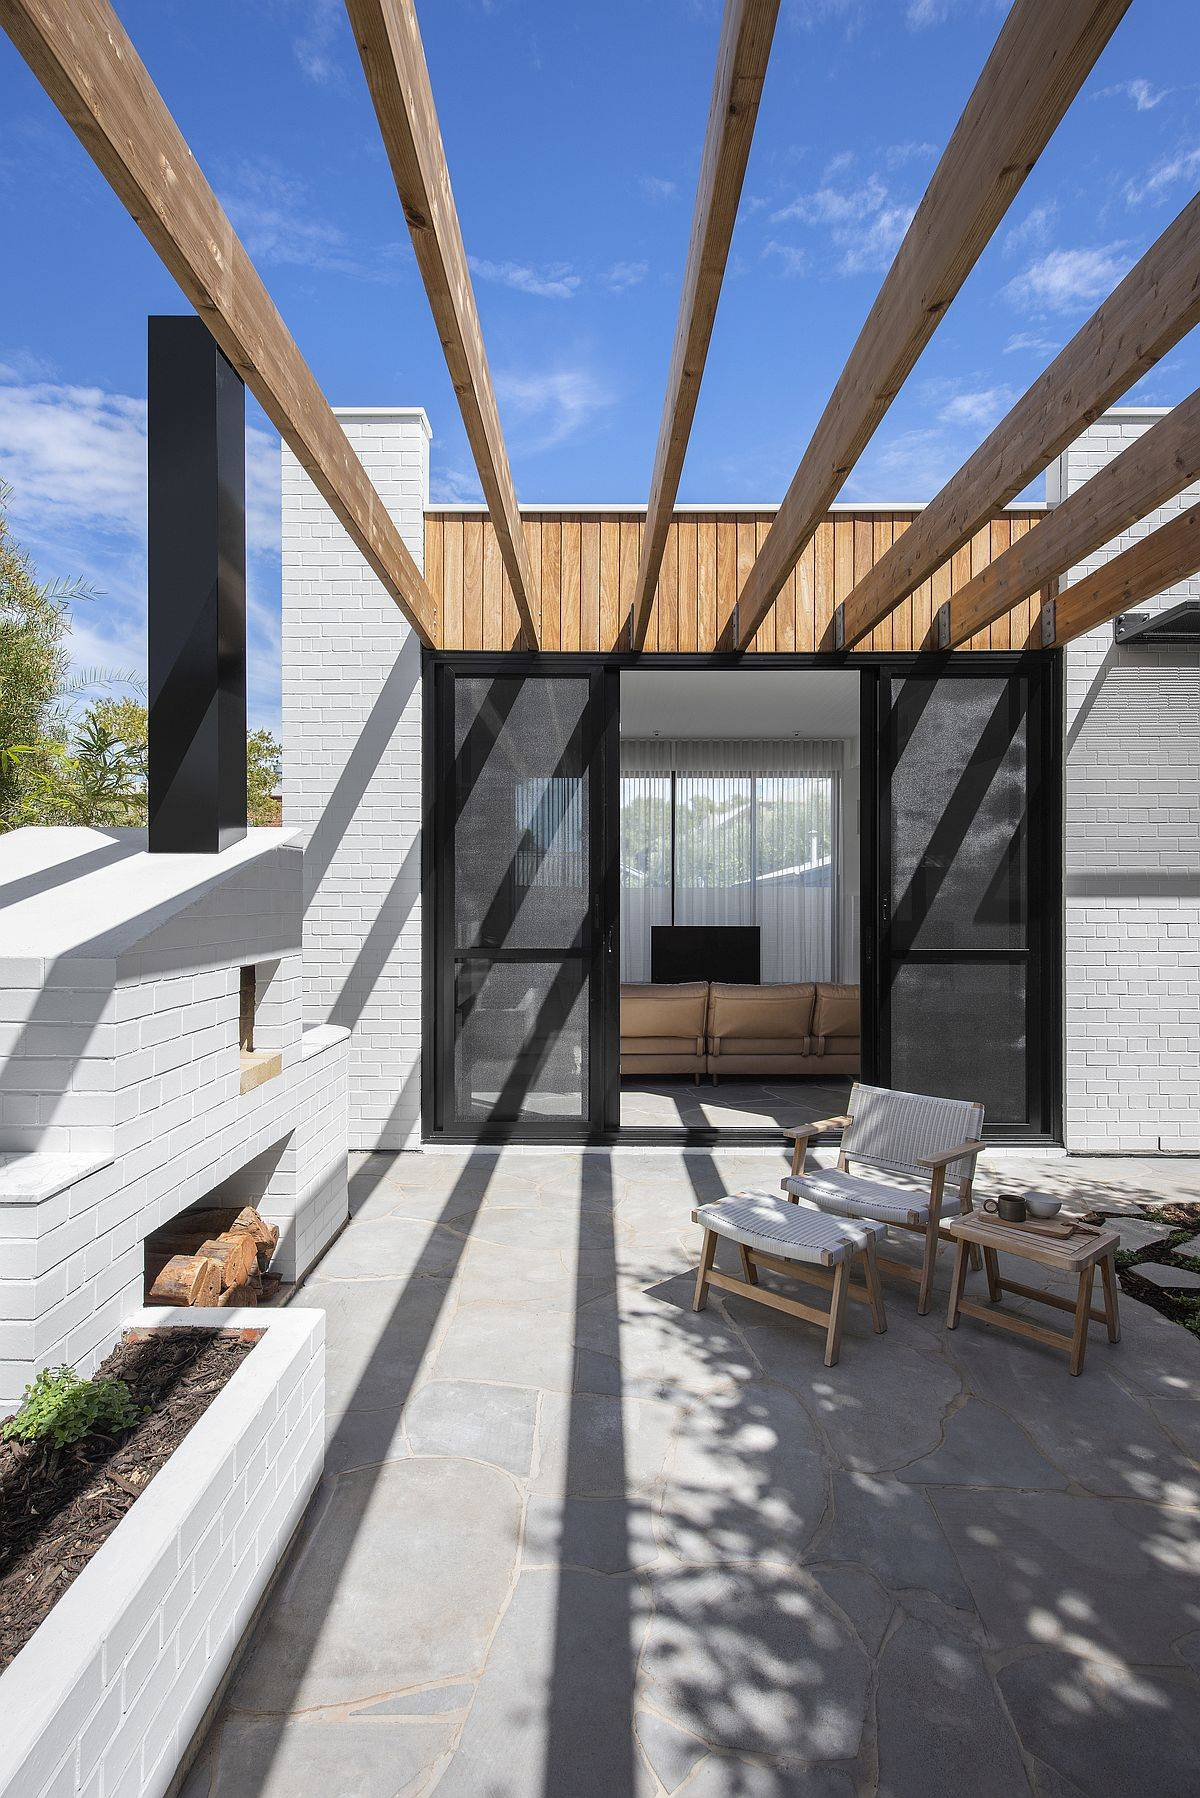 Timber beams offer shade for the outdoor sitting area